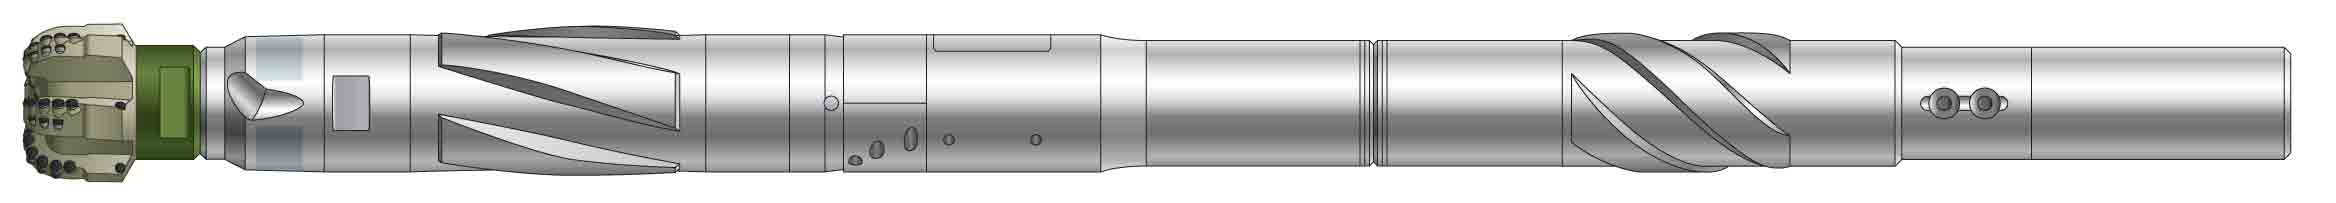 A simplified side-view rendering of a shortened BHA incorporating a PowerDrive Archer RSS and a PDC bit